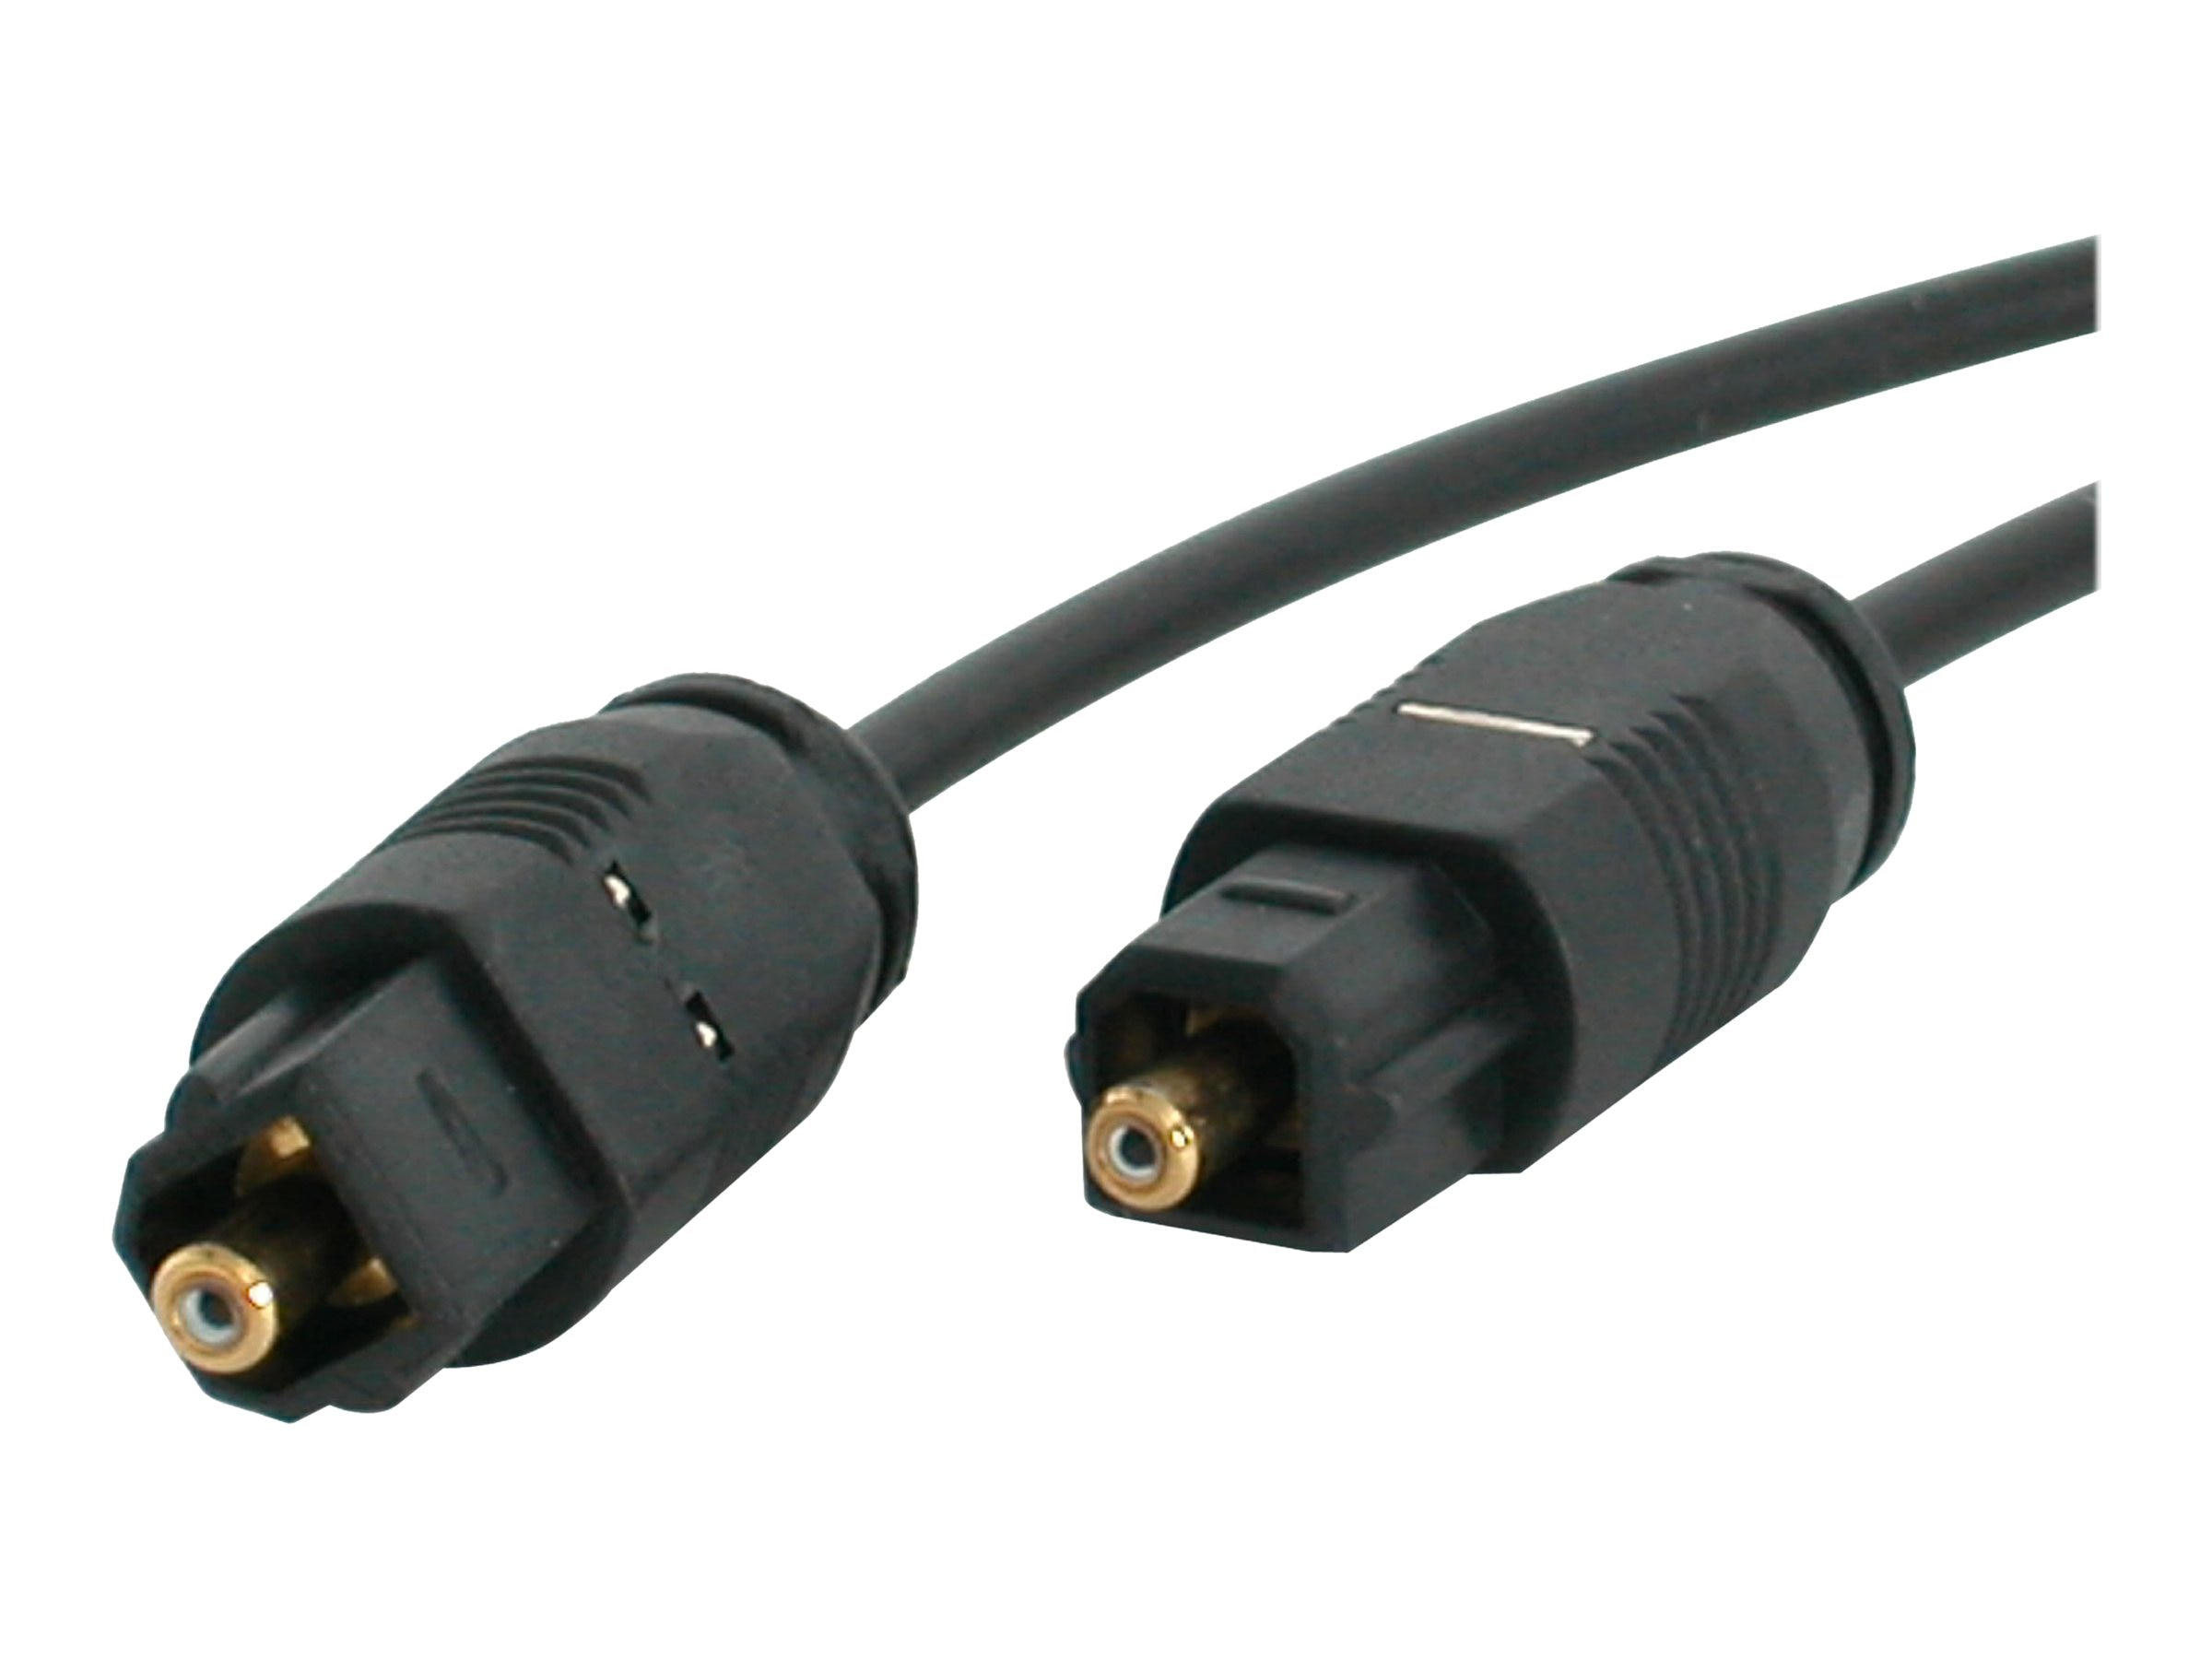 StarTech.com Digital Audio Cable, Thin Toslink, 10ft, THINTOS10, 4905368, Cables